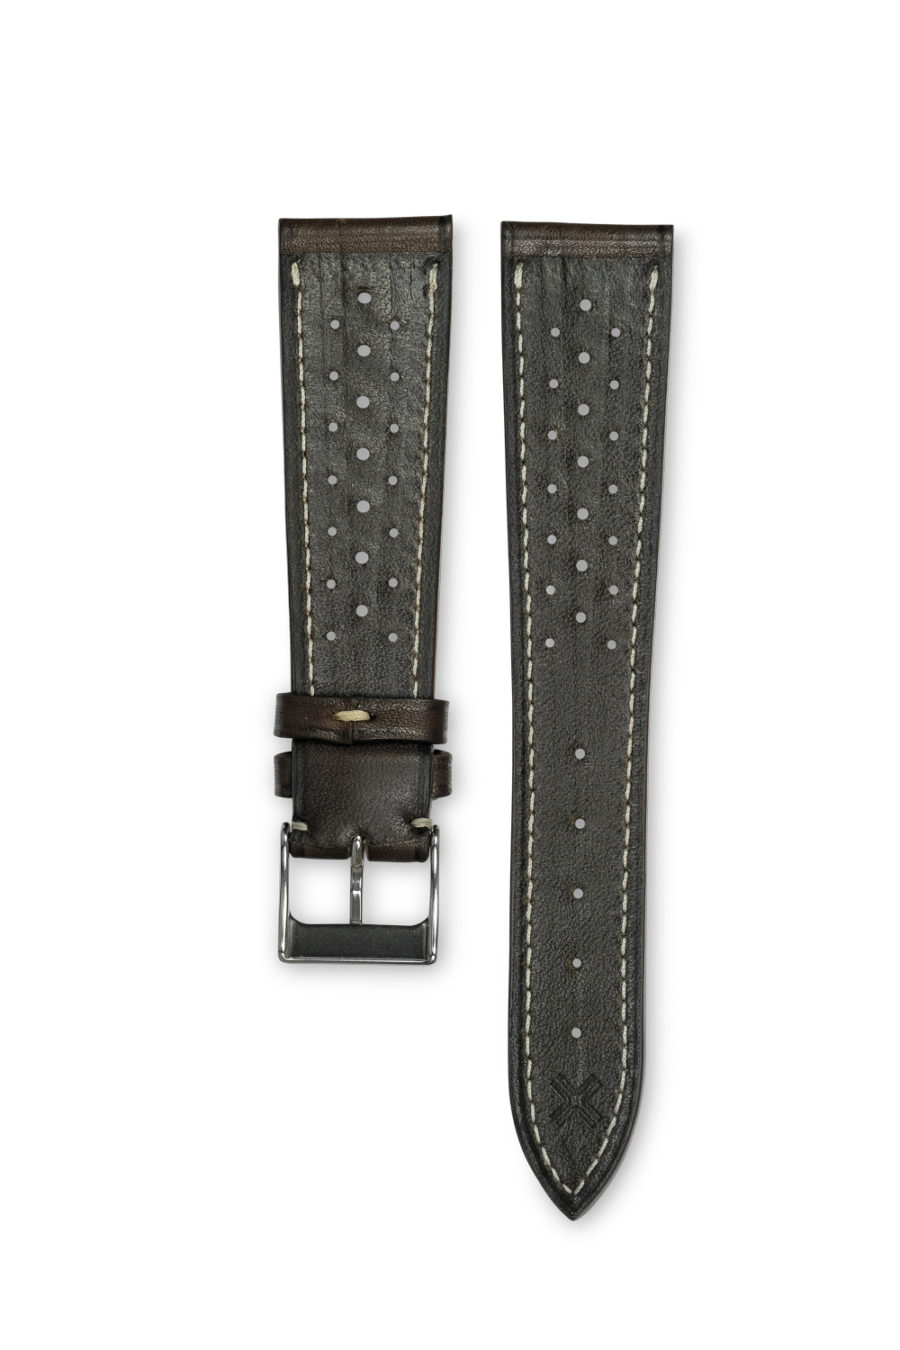 Smooth Racing Barenia chocolate brown leather watch strap - cream stitching - LUGS brand